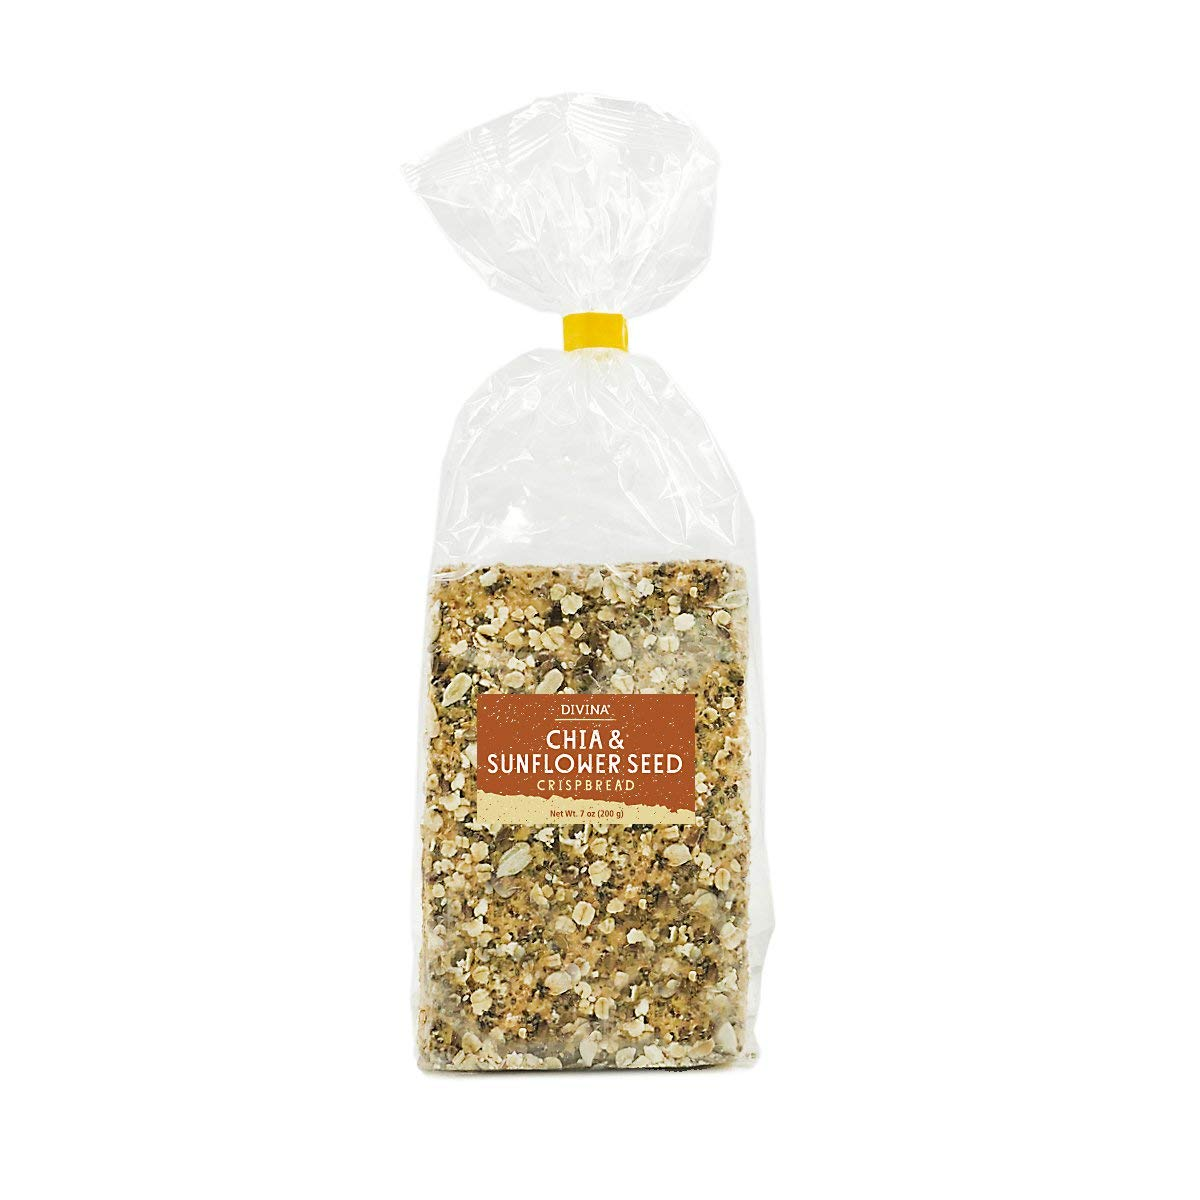 Divina Chia & Sunflower Seed Crispbread, 7 Oz. (Case of 14)